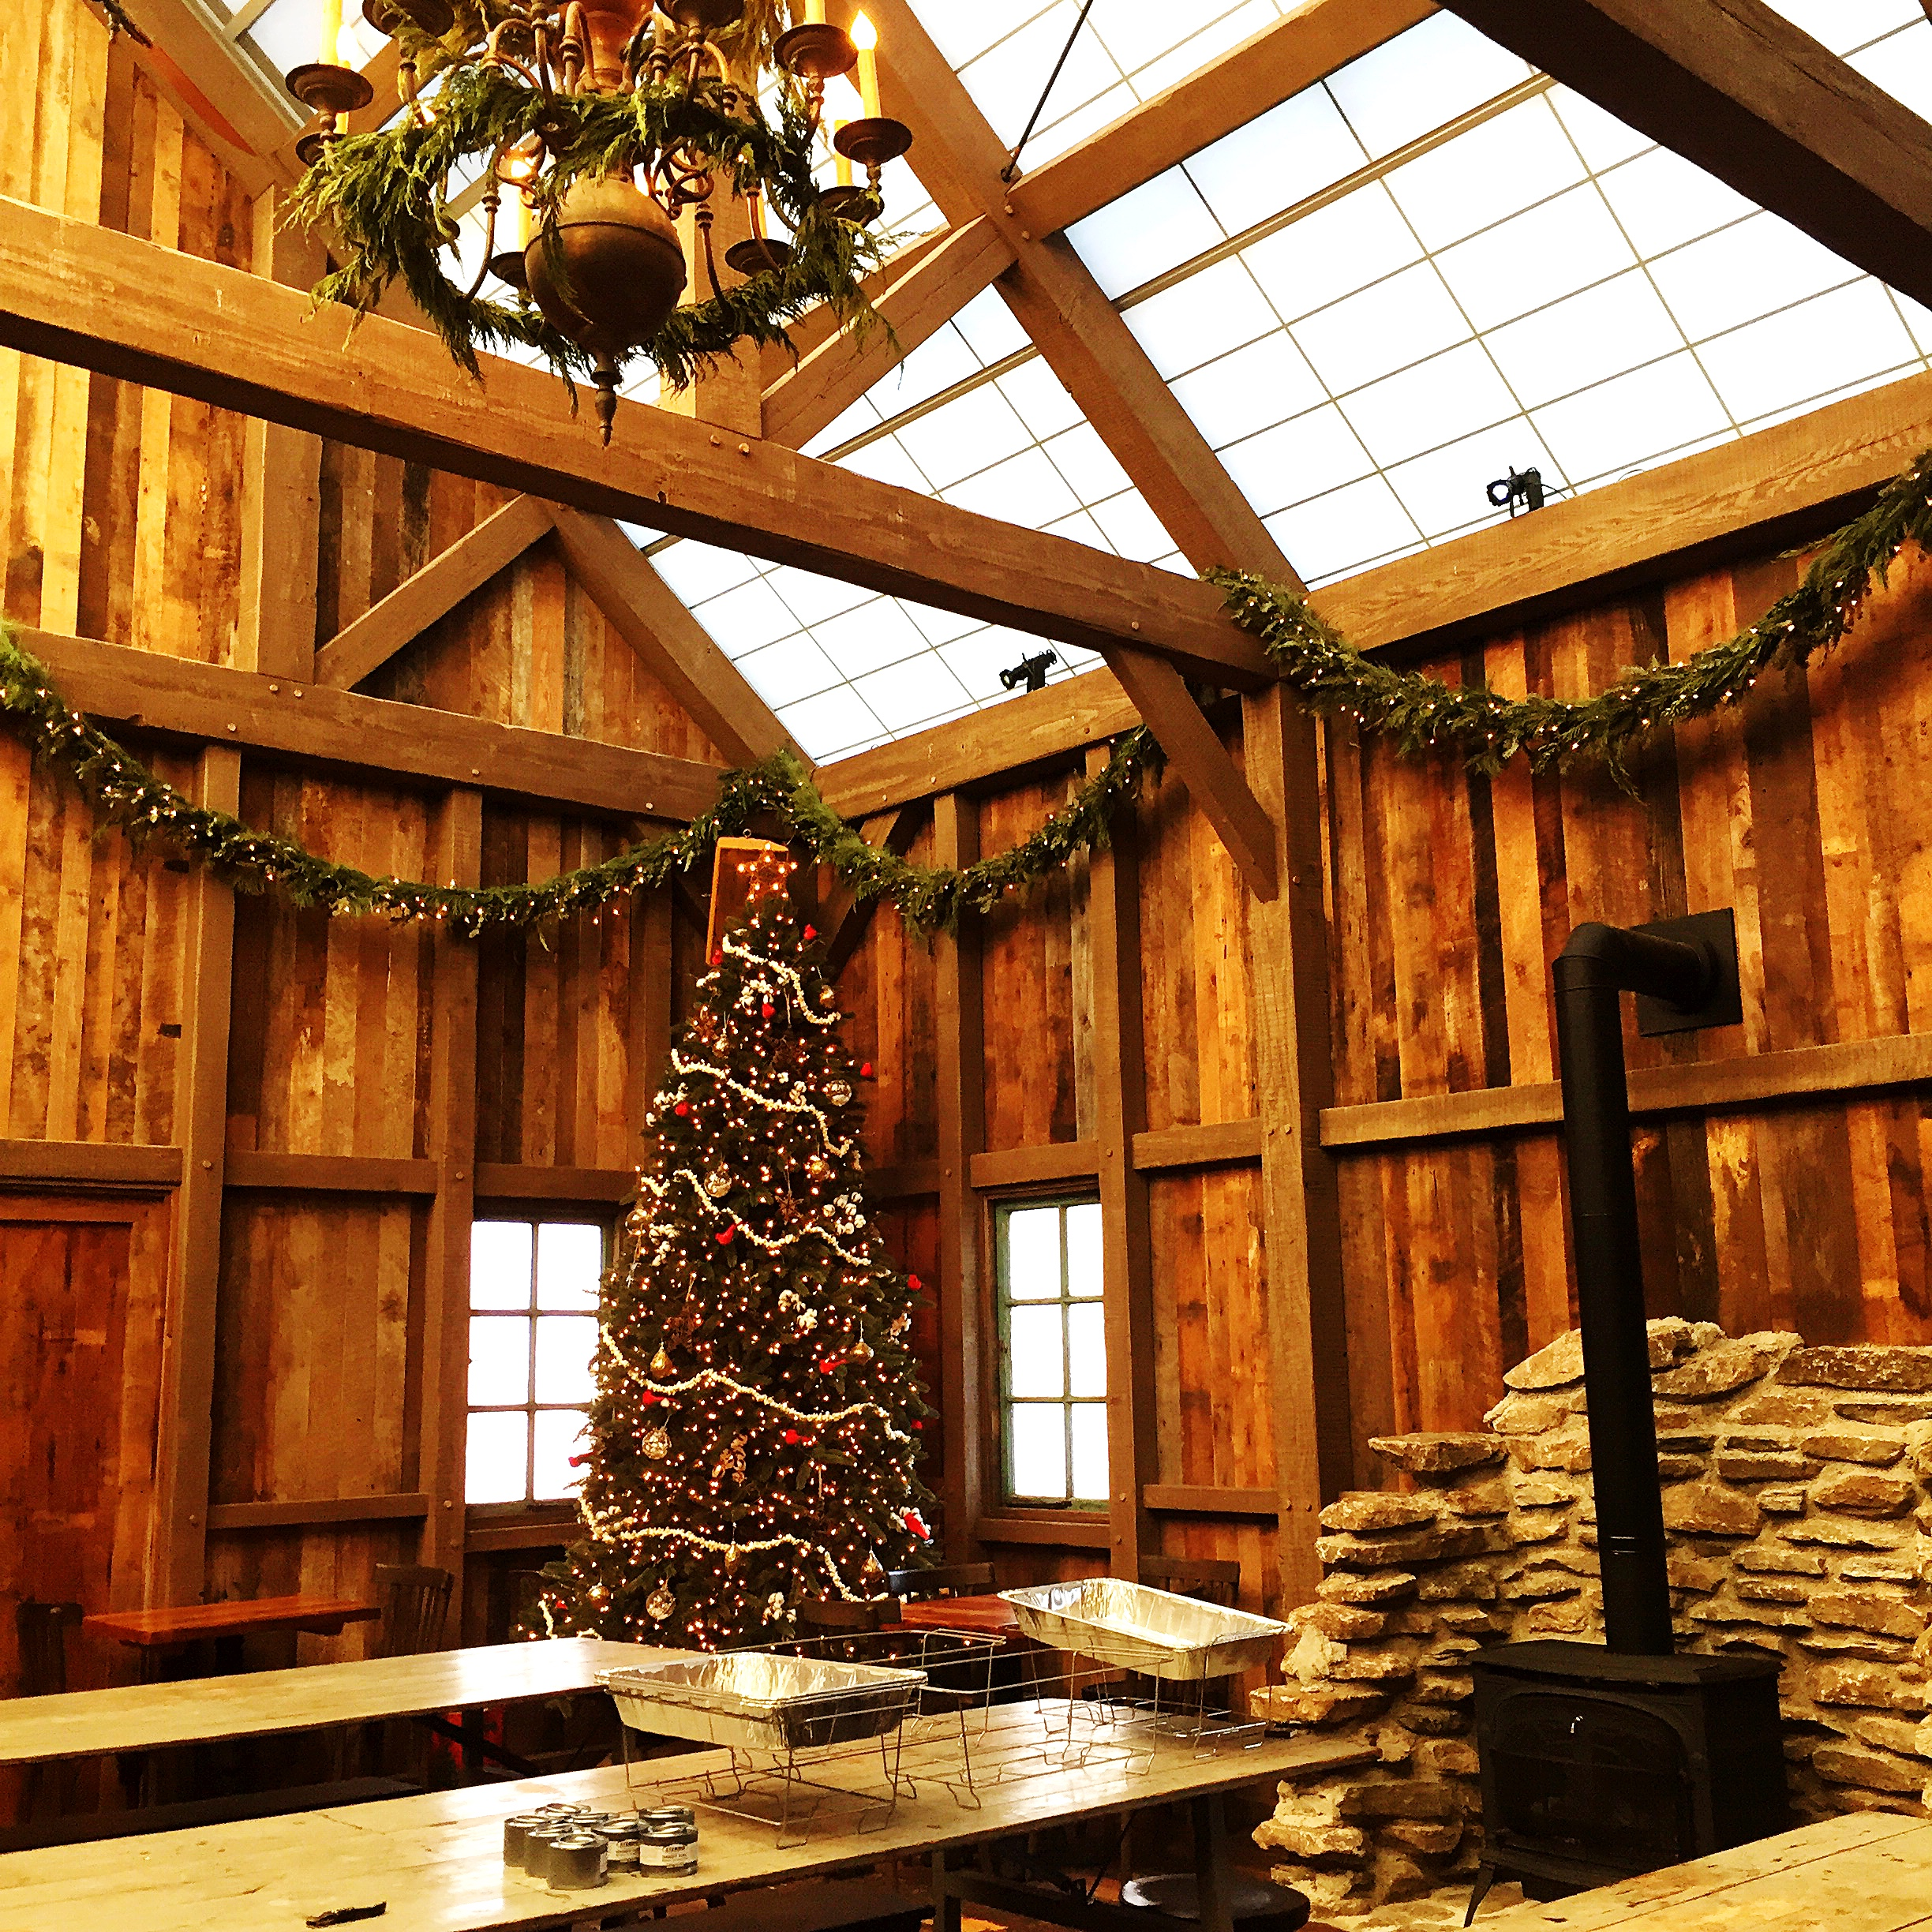 The barn for the holidays.